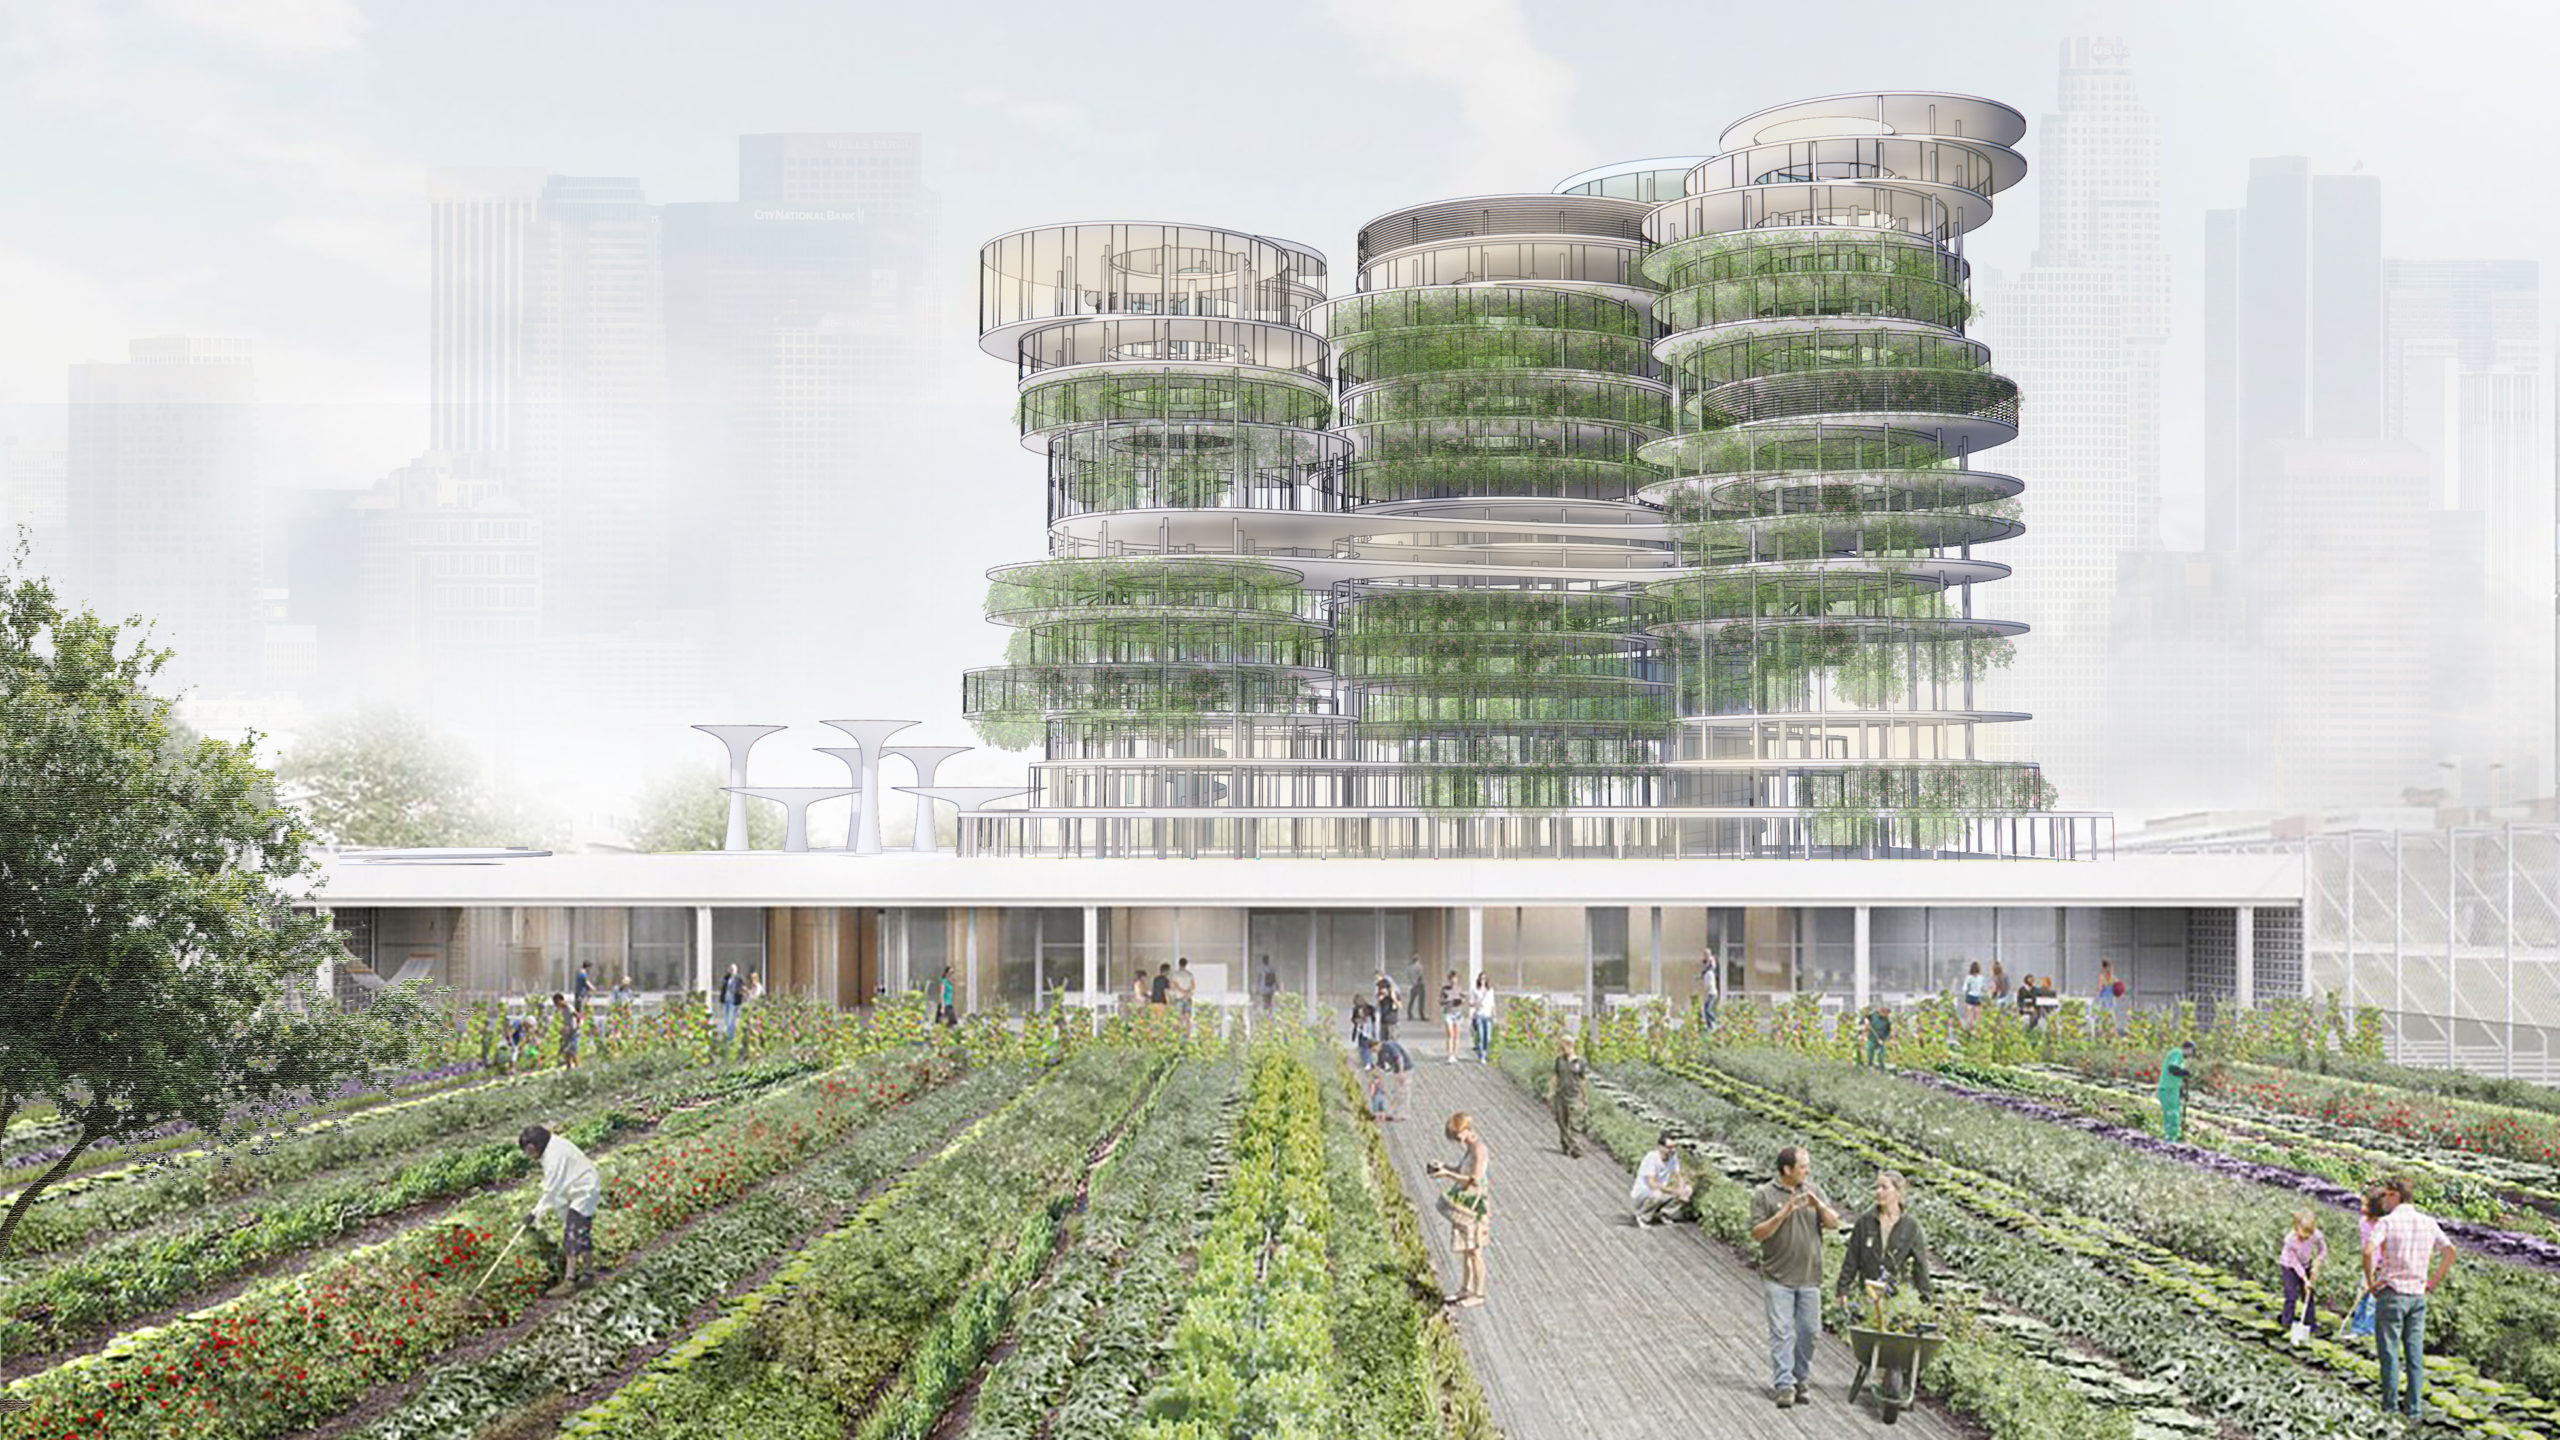 Agriculture Tower _ New City Ecosystem - Han Deng, M.AAS '20